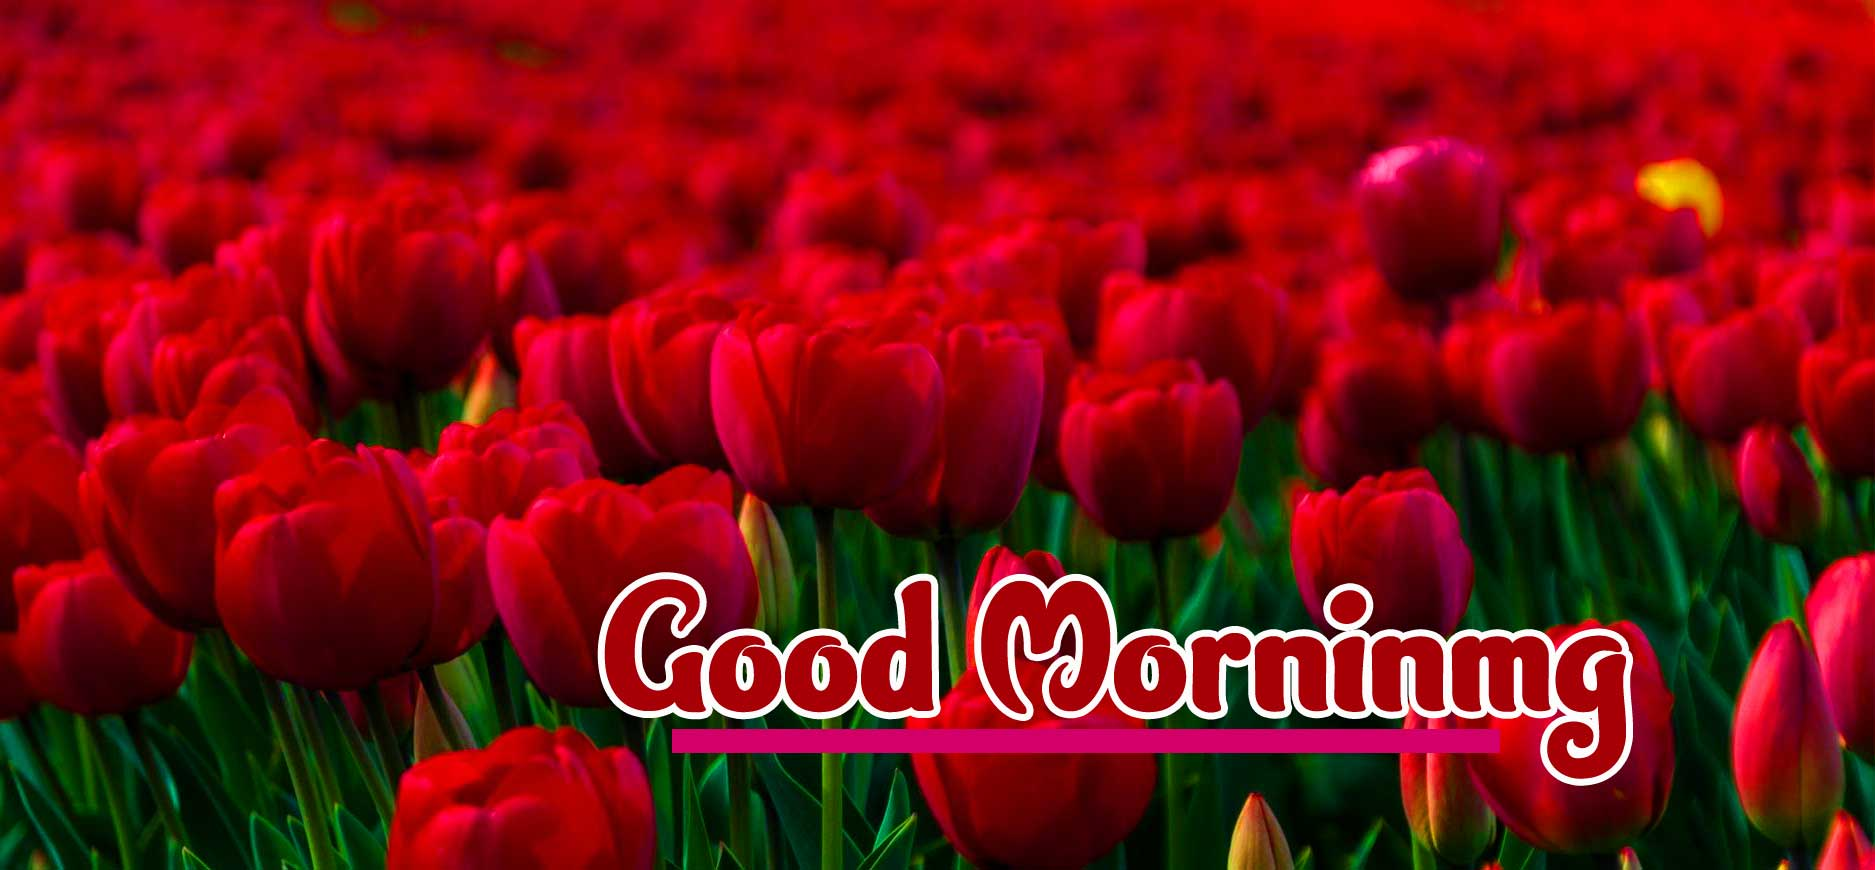 Good Morning Wishes Images Wallpaper Free Download